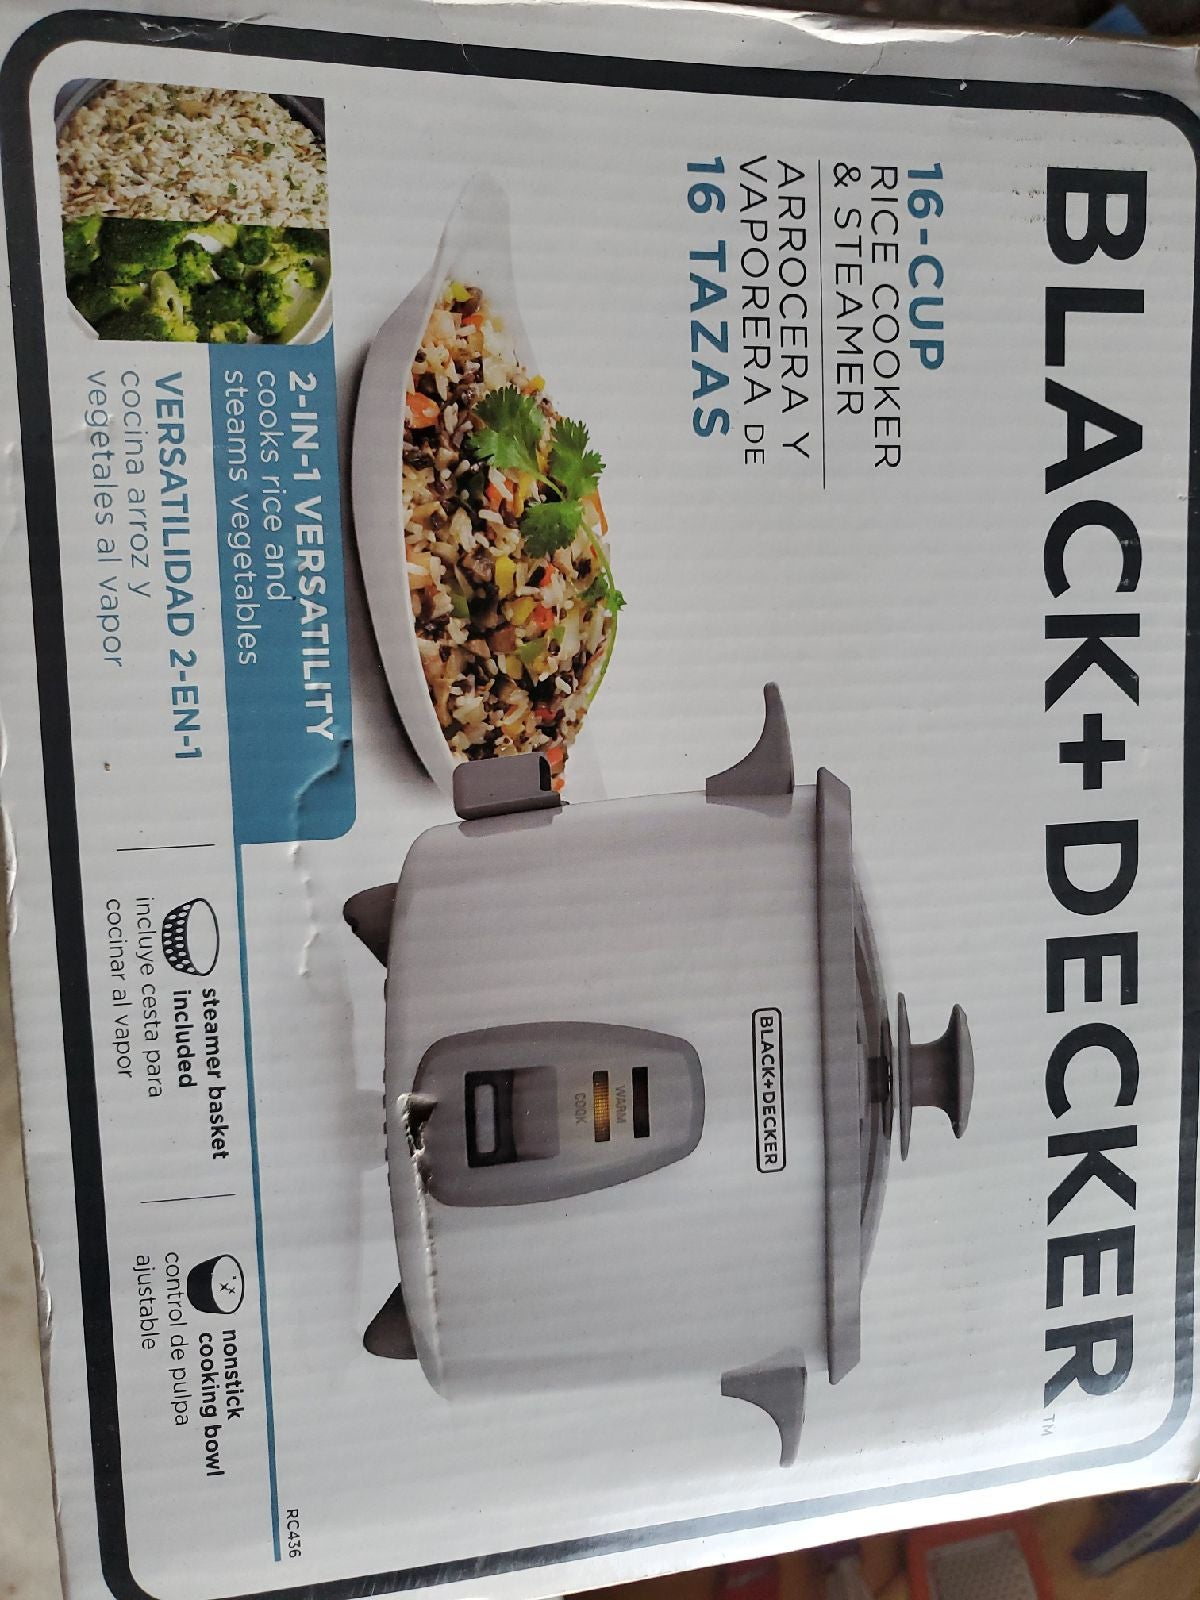 rice cooker 16 cup